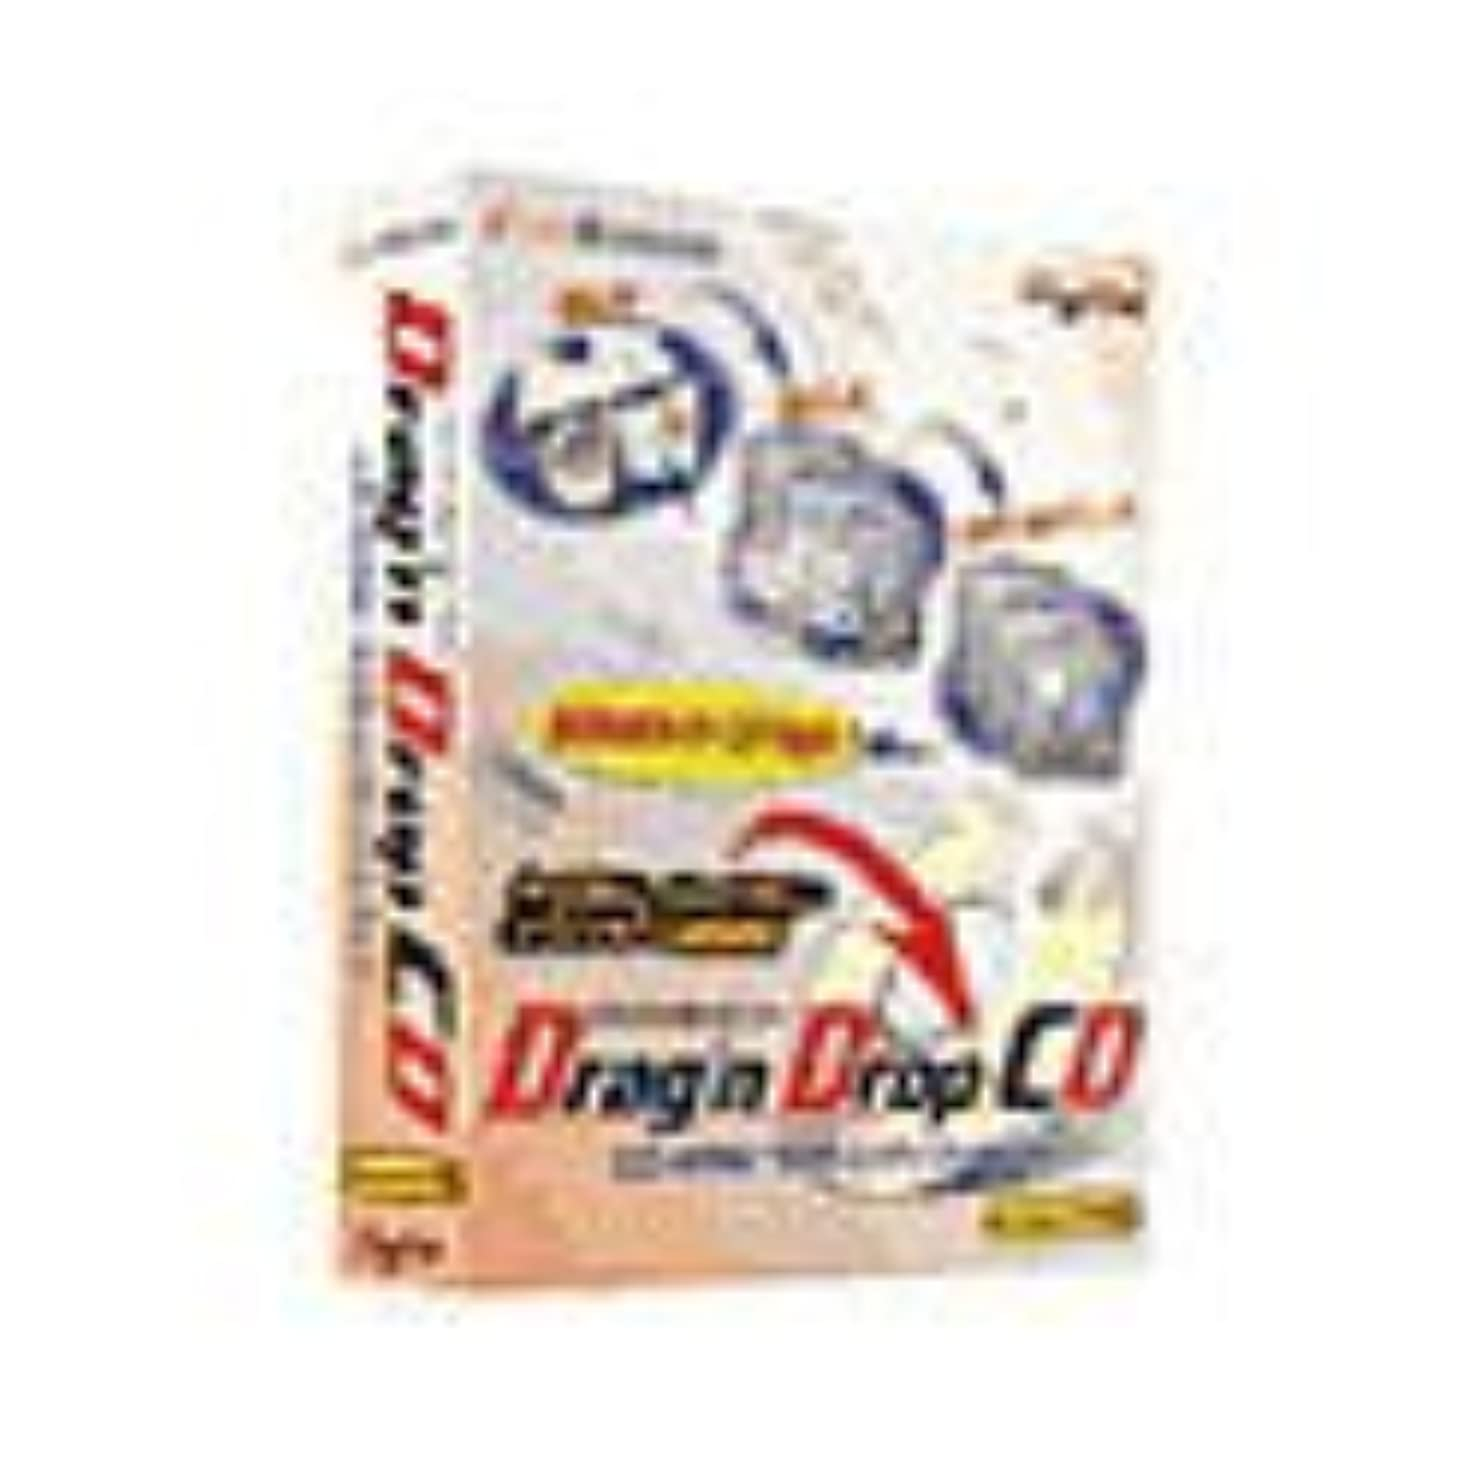 Drag'n Drop CD